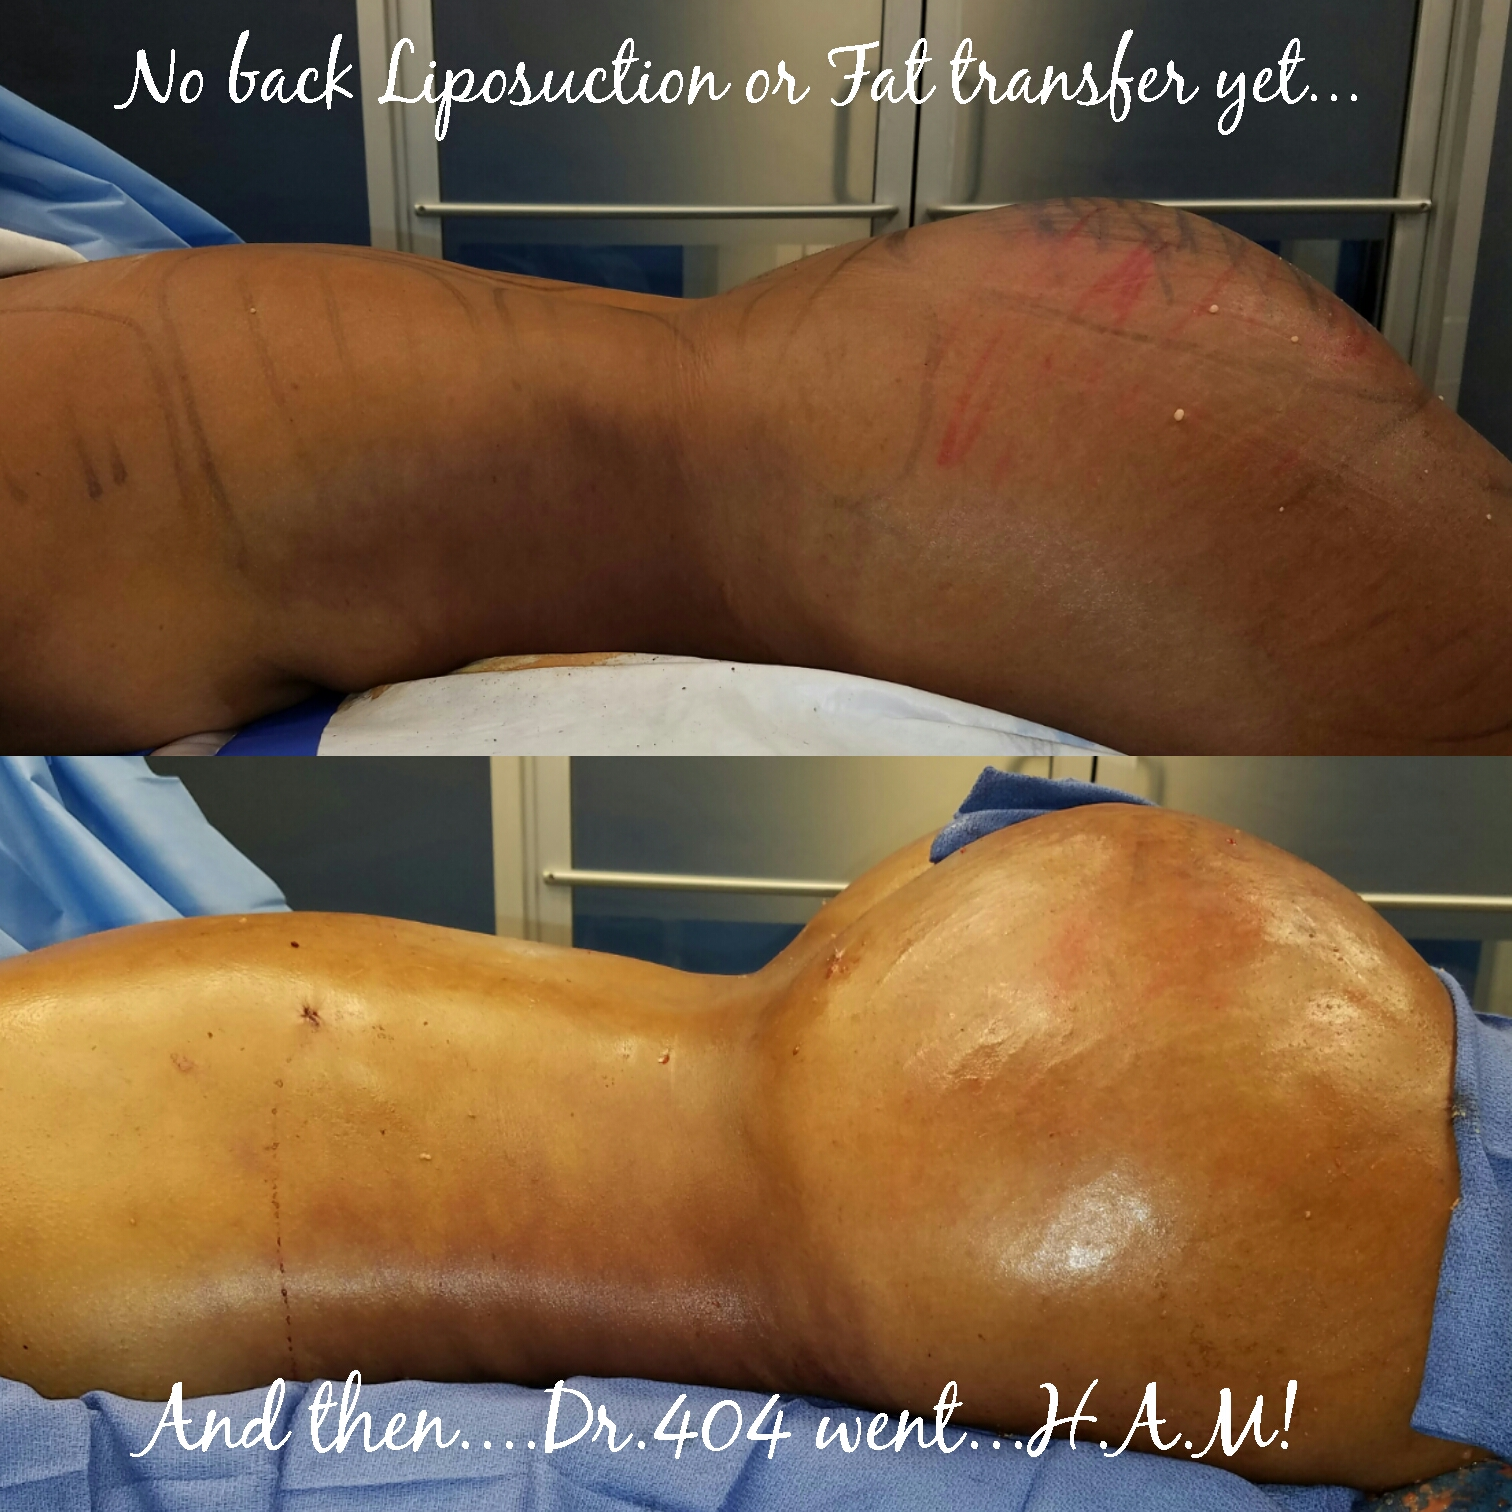 atlanta liposuction, liposuction atlanta, liposuction plastic surgery, plastic surgeon liposuction, brazilian butt lift, BBl, buttock augmentation, fat transfer